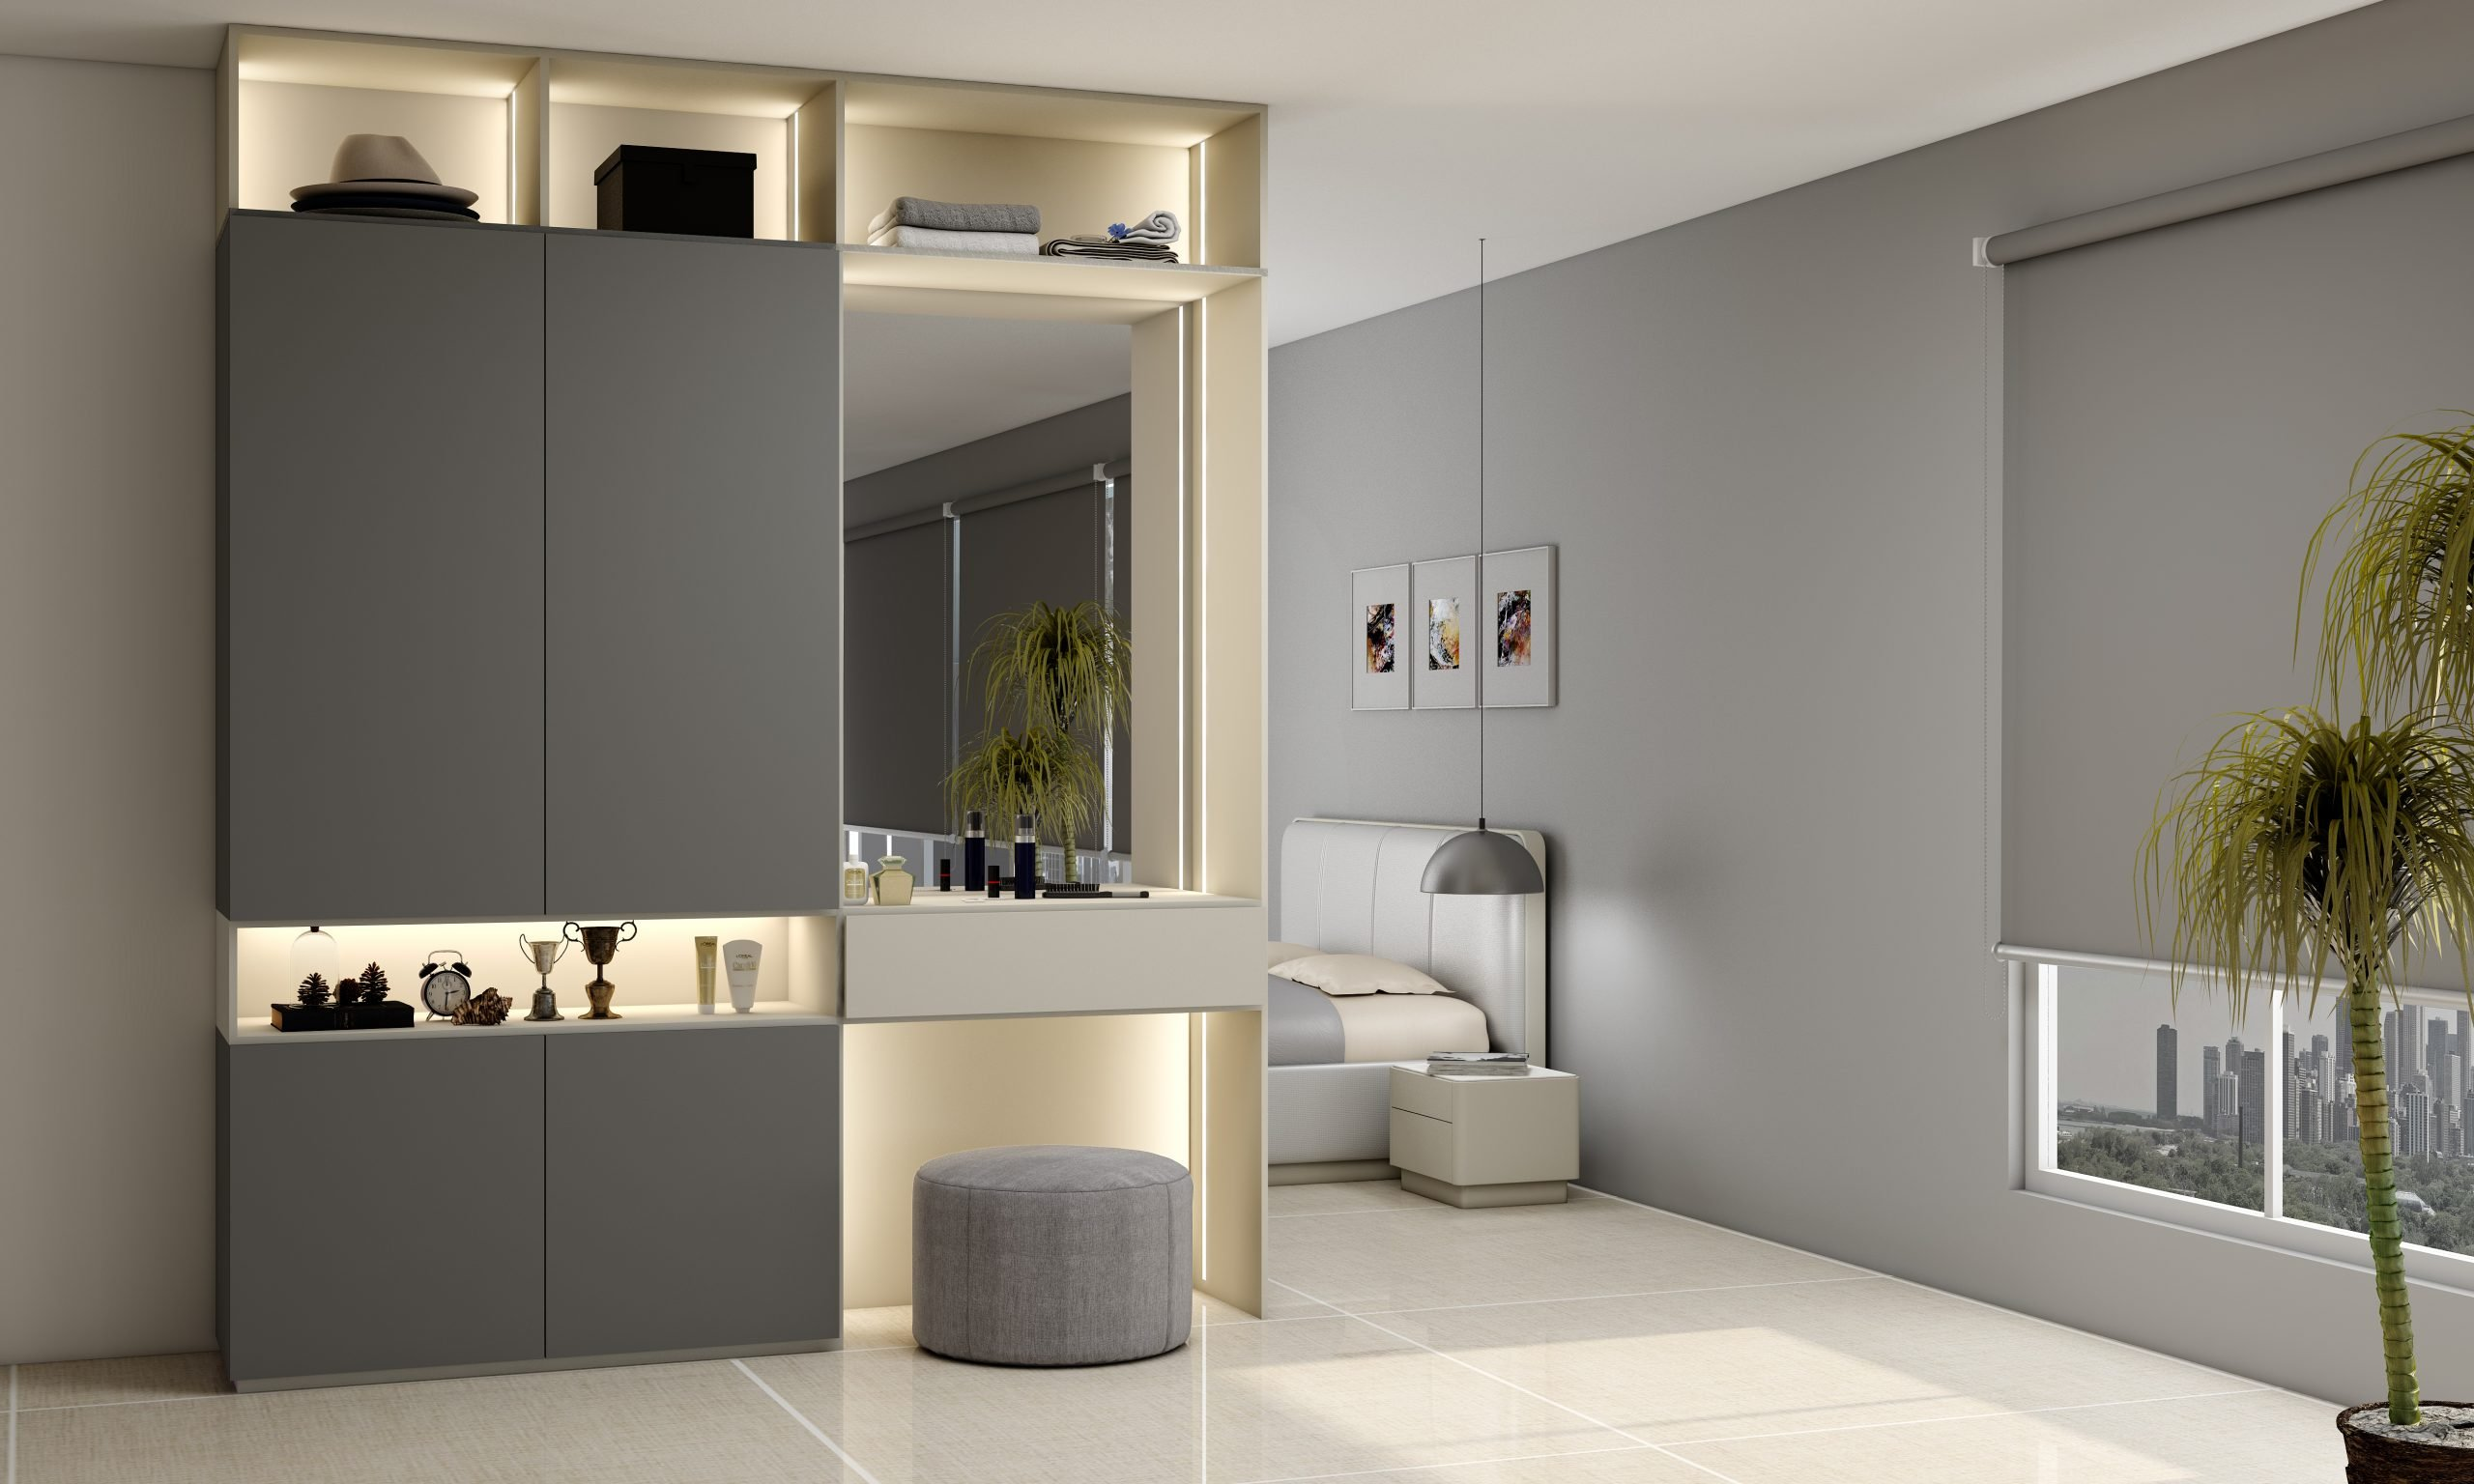 Hinged Wardrobe with Dresser Unit Storage in combination of dust grey and light grey finish